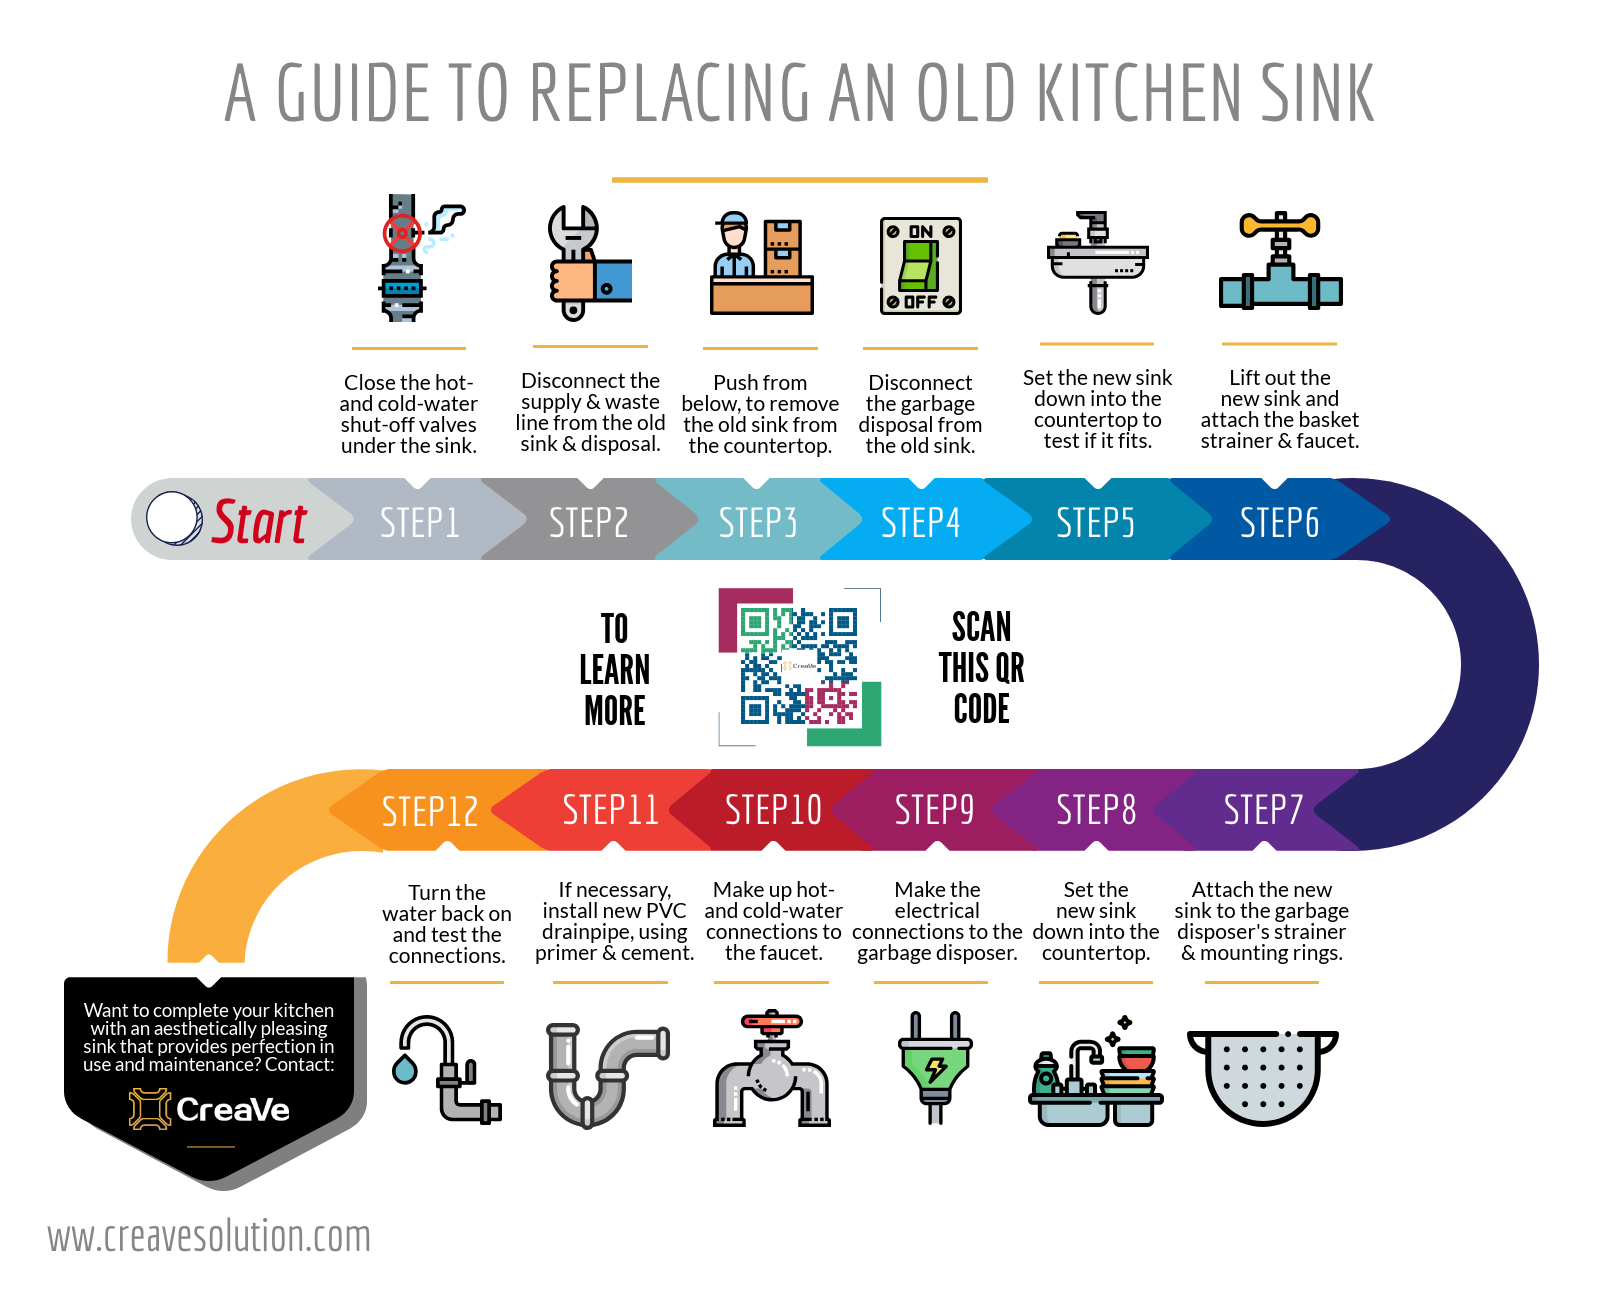 A Guide To Replacing An Old Kitchen Sink